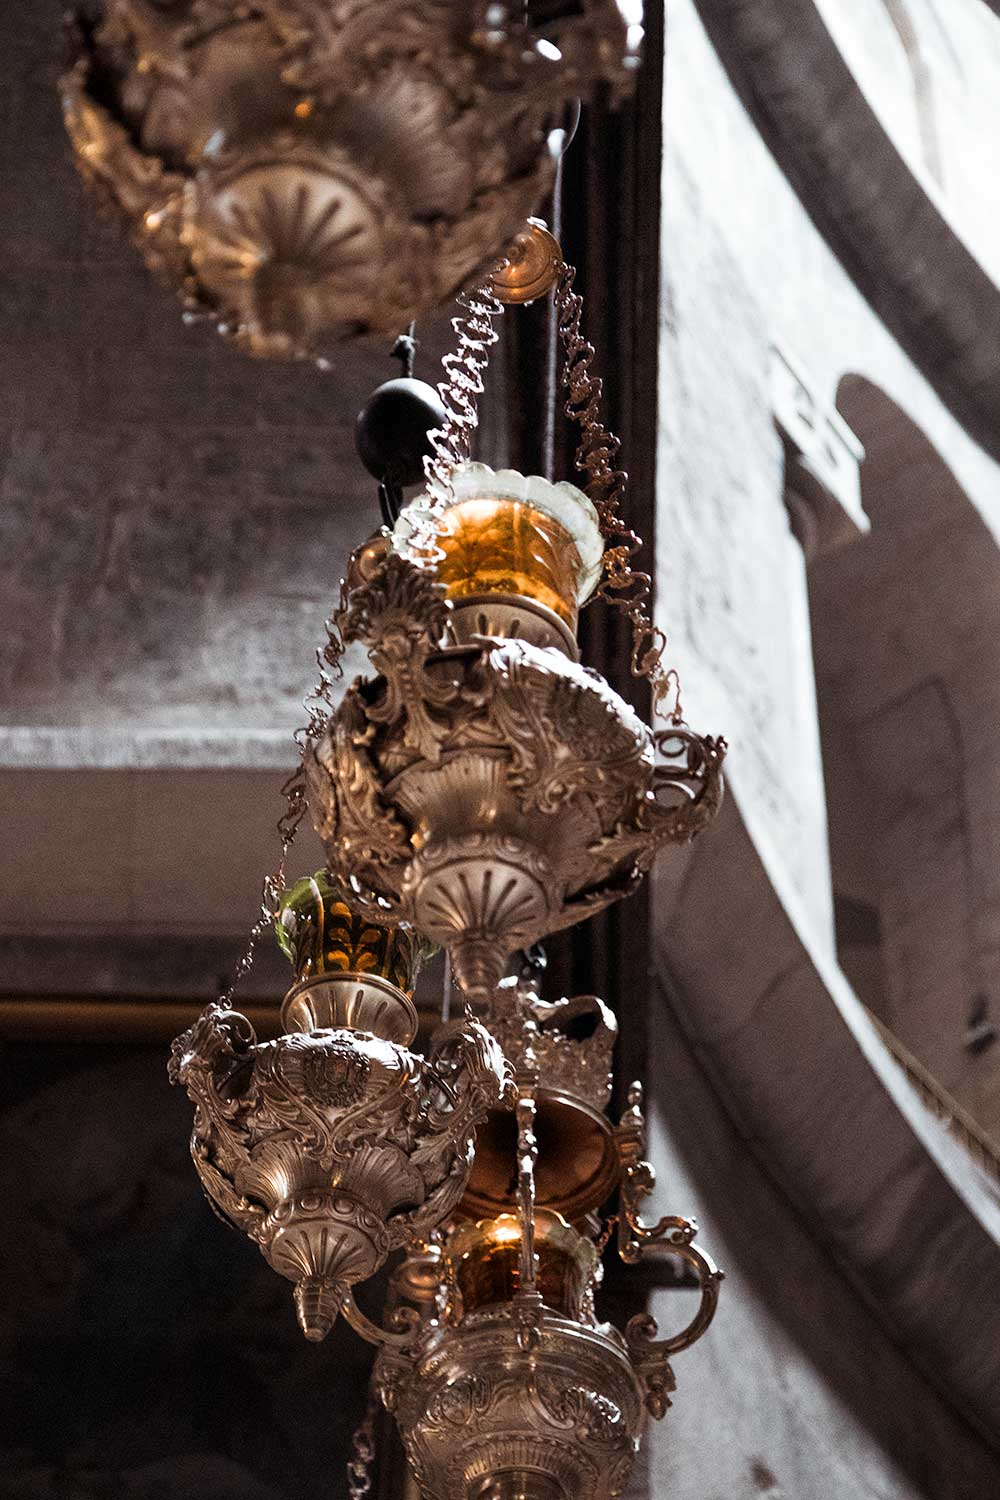 Dangling lights at the Church of the Holy Sepulchre in the Christian Quarter of Jerusalem